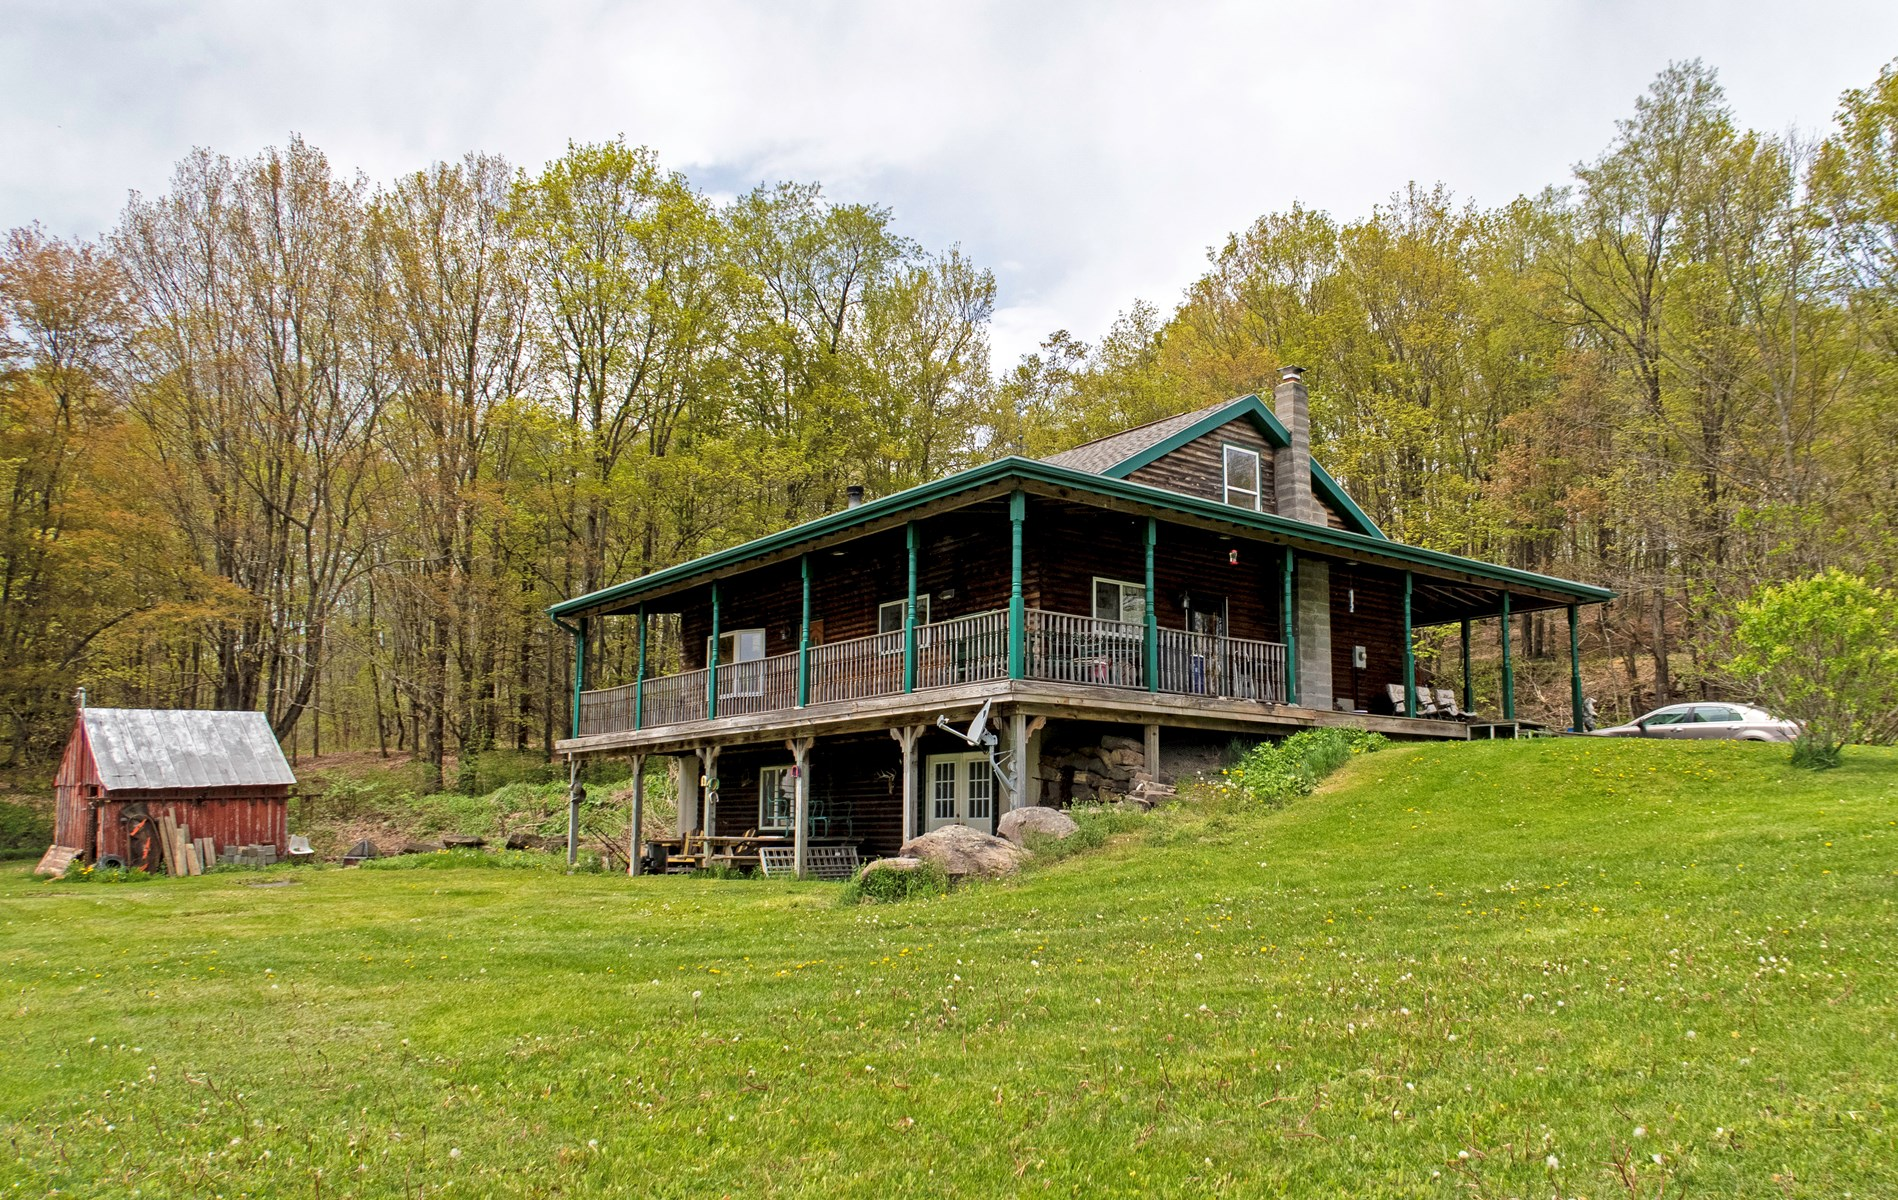 Country Log Home Retreat in Upstate New York